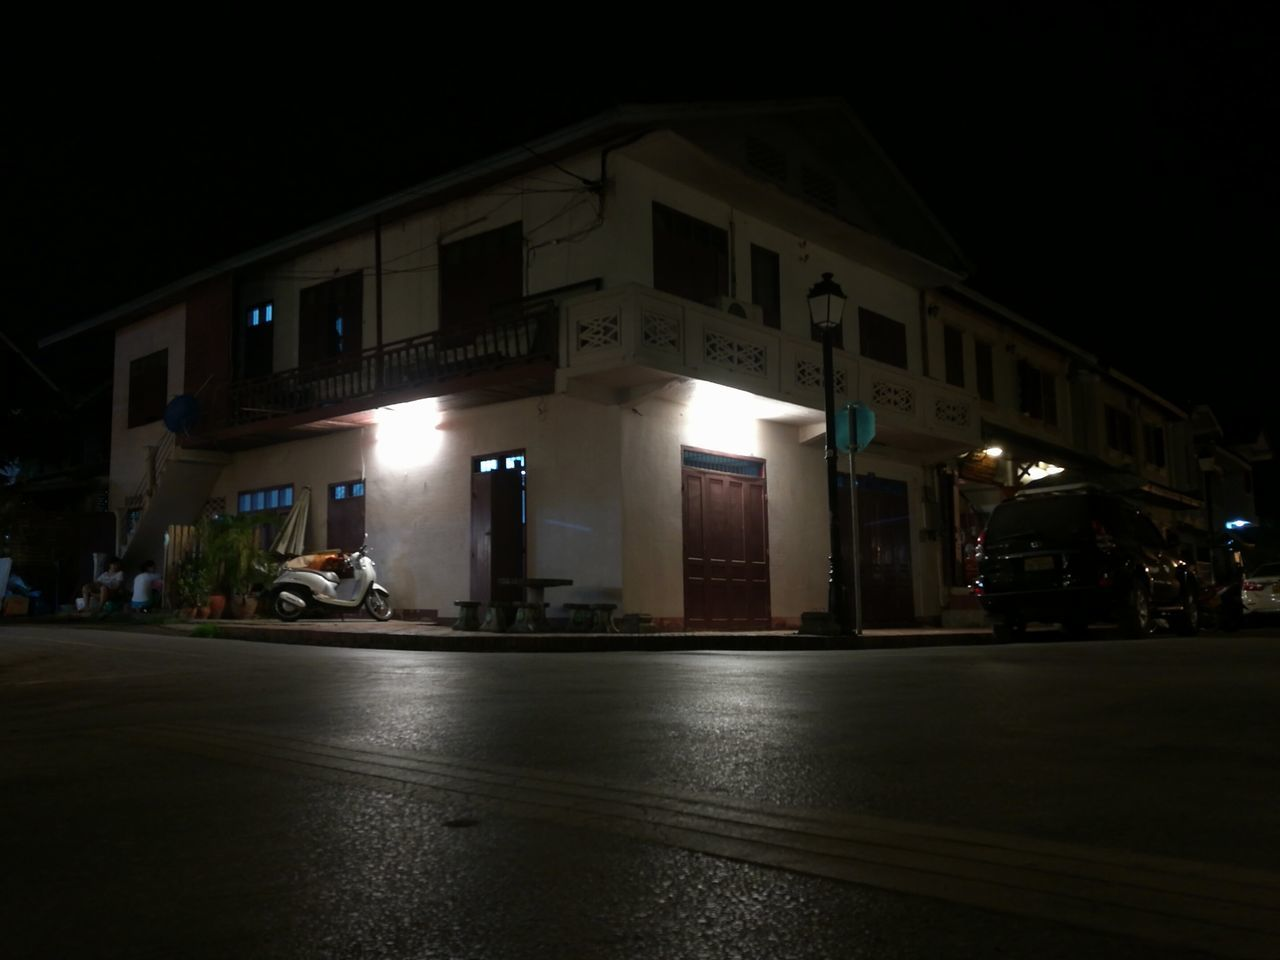 Night Architecture City Built Structure Building Exterior Outdoors No People Building Lao Culture Street Photography Asianlife EyeEmNewHere Asien Asianstyle Laos Travel Architecture Residential Building Nightphotography Night Lights Night Photography Nightlife Home Sweet Home ♥ Home Nighttime Night City